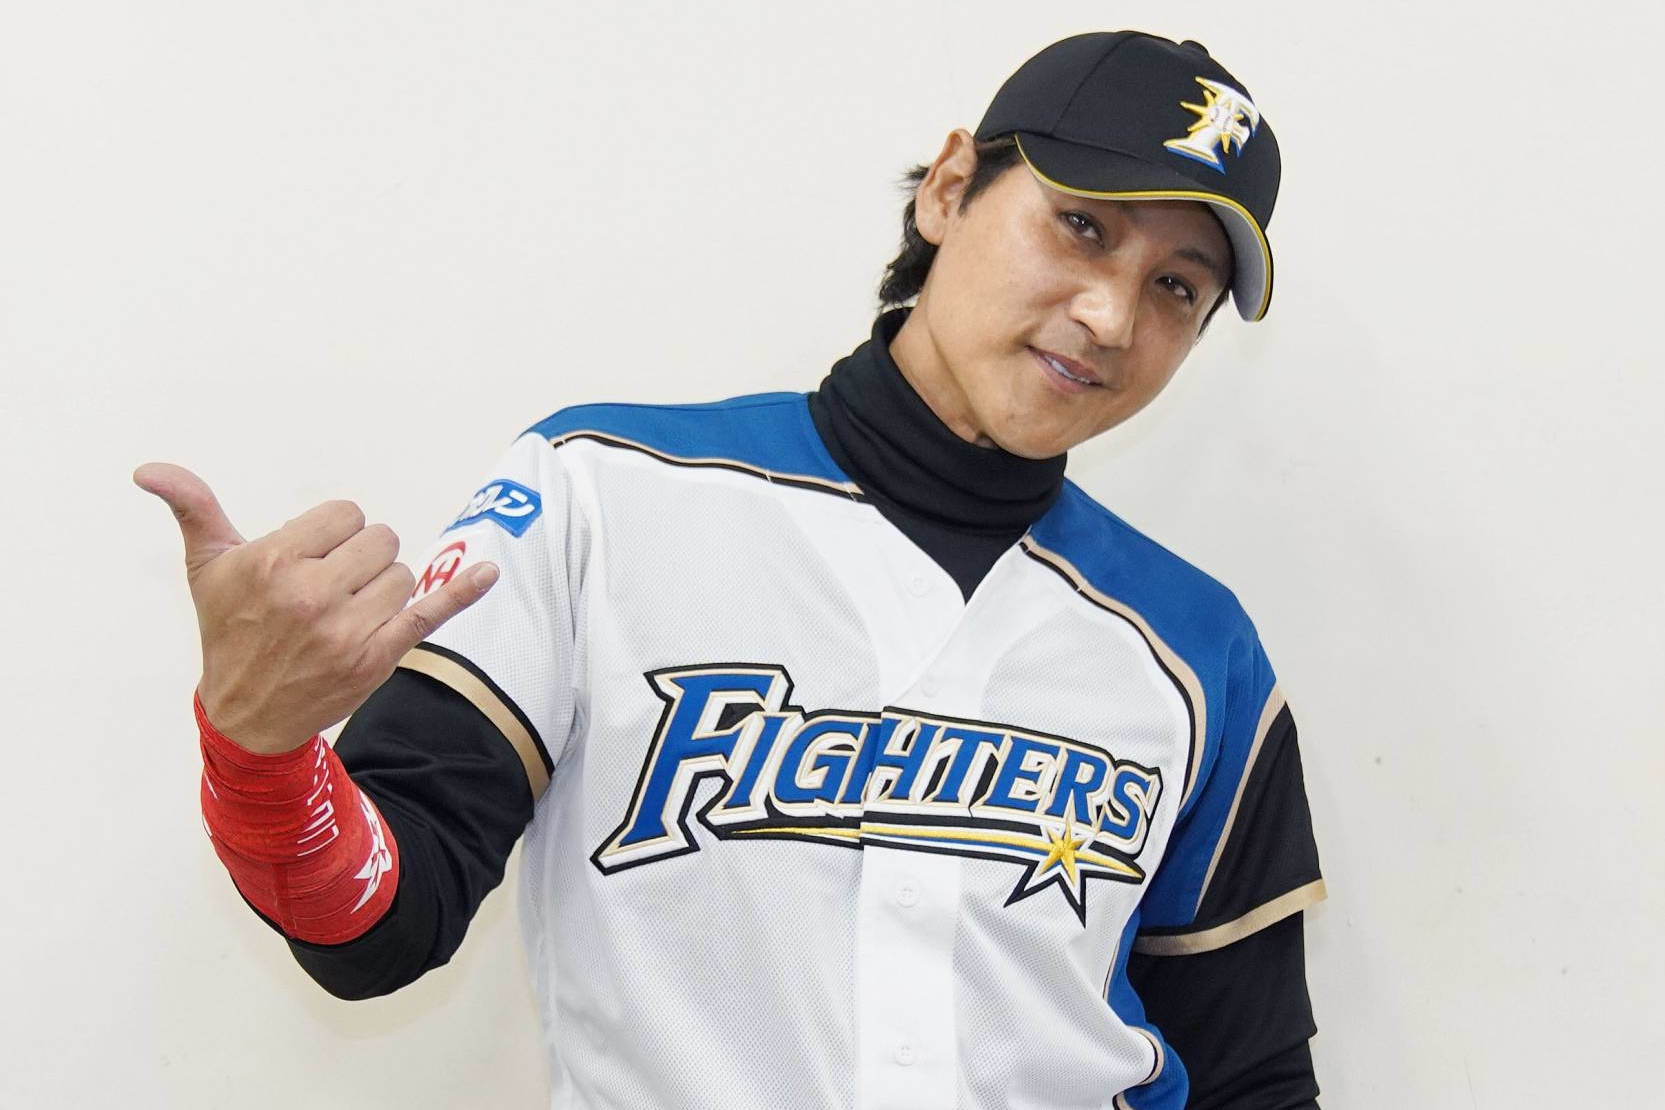 Former NPB star Tsuyoshi Shinjo recently attempted to make a comeback after 14 years away from baseball. | KYODO